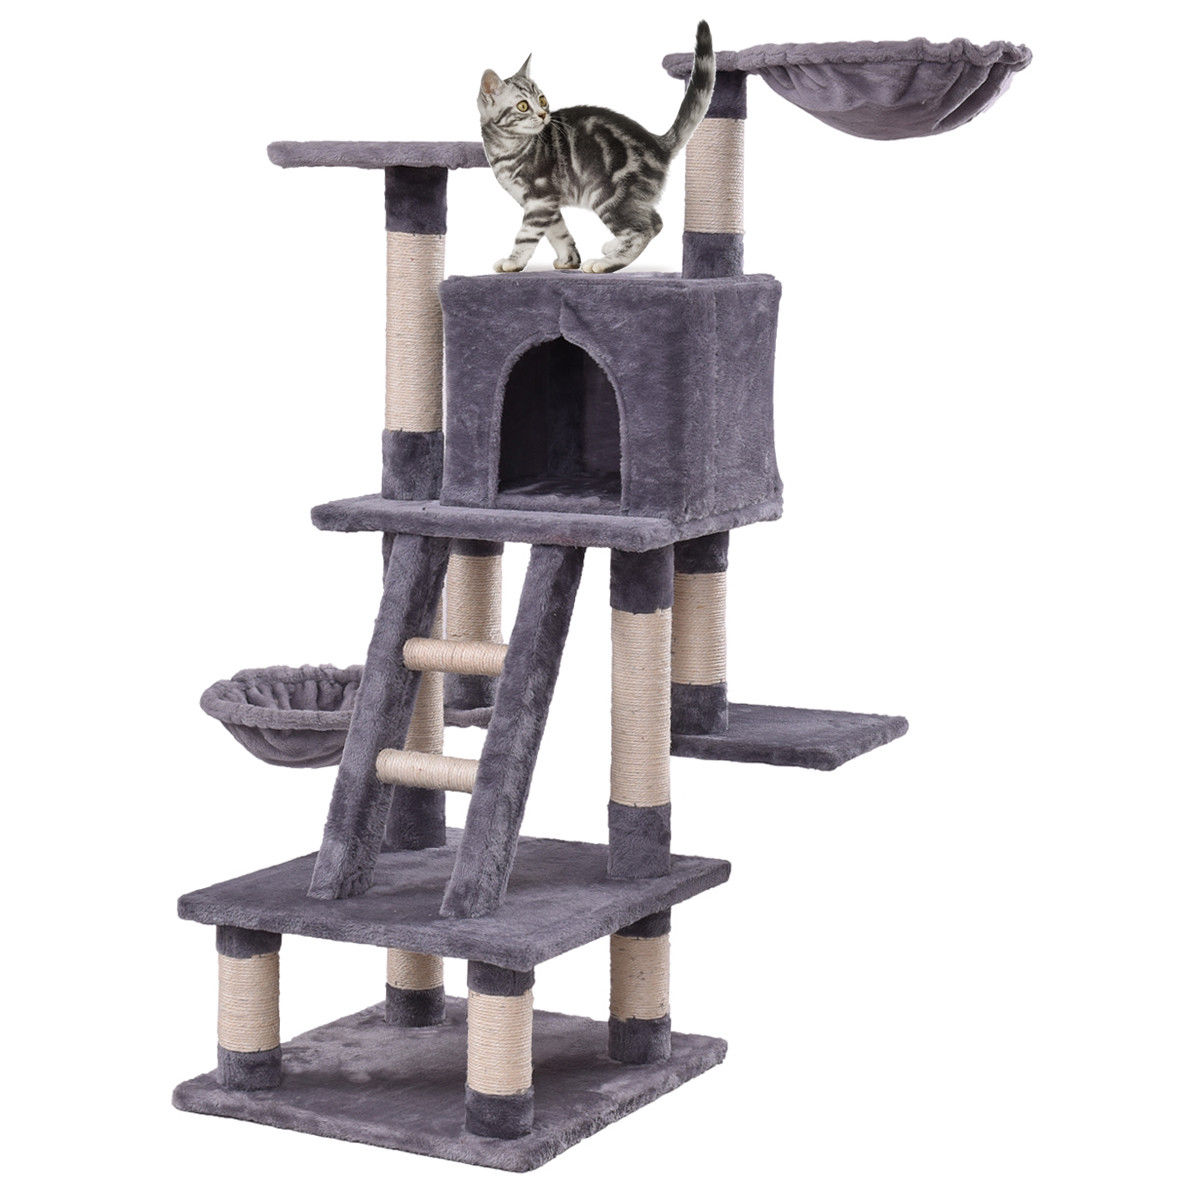 Gymax 46'' Cat Tree Kitten Pet Play House Furniture Condo Scratching Posts Rope Ladder by Gymax